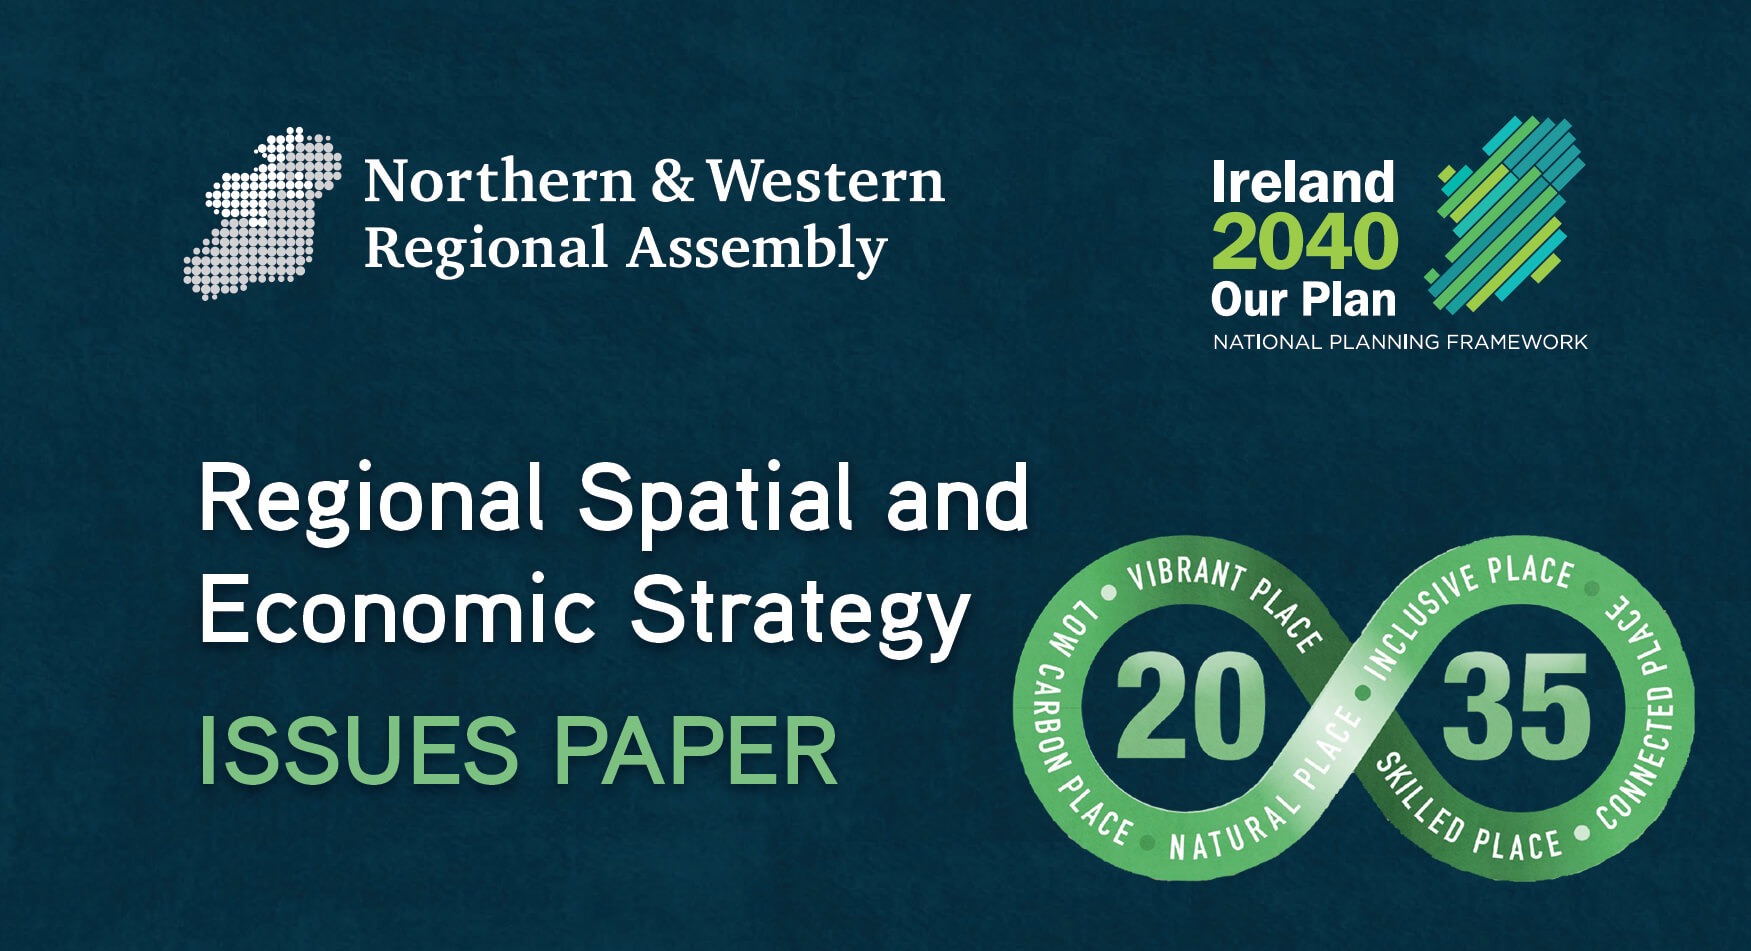 Regional Spatial and Economic Strategy